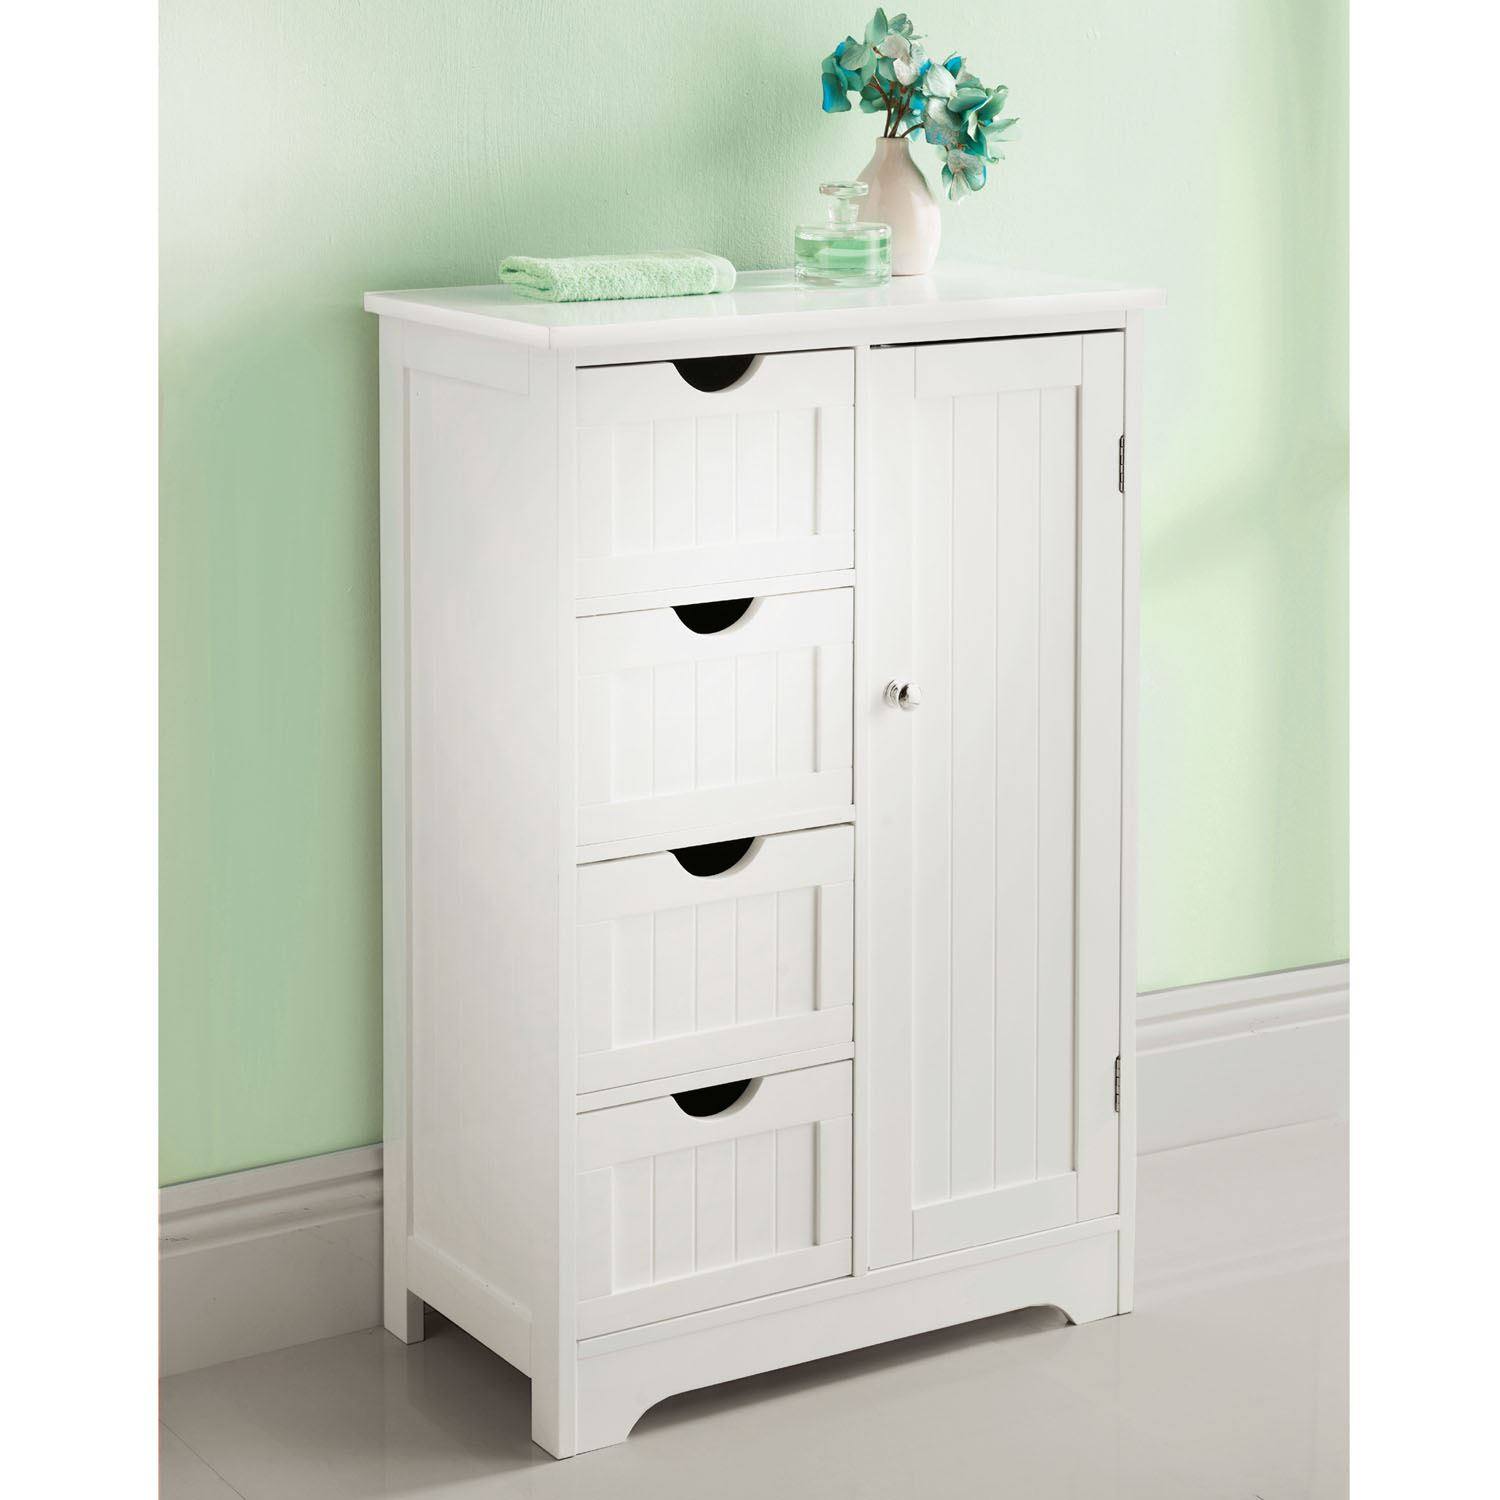 White wooden bathroom cabinet shelf cupboard bedroom for Storage in cupboards